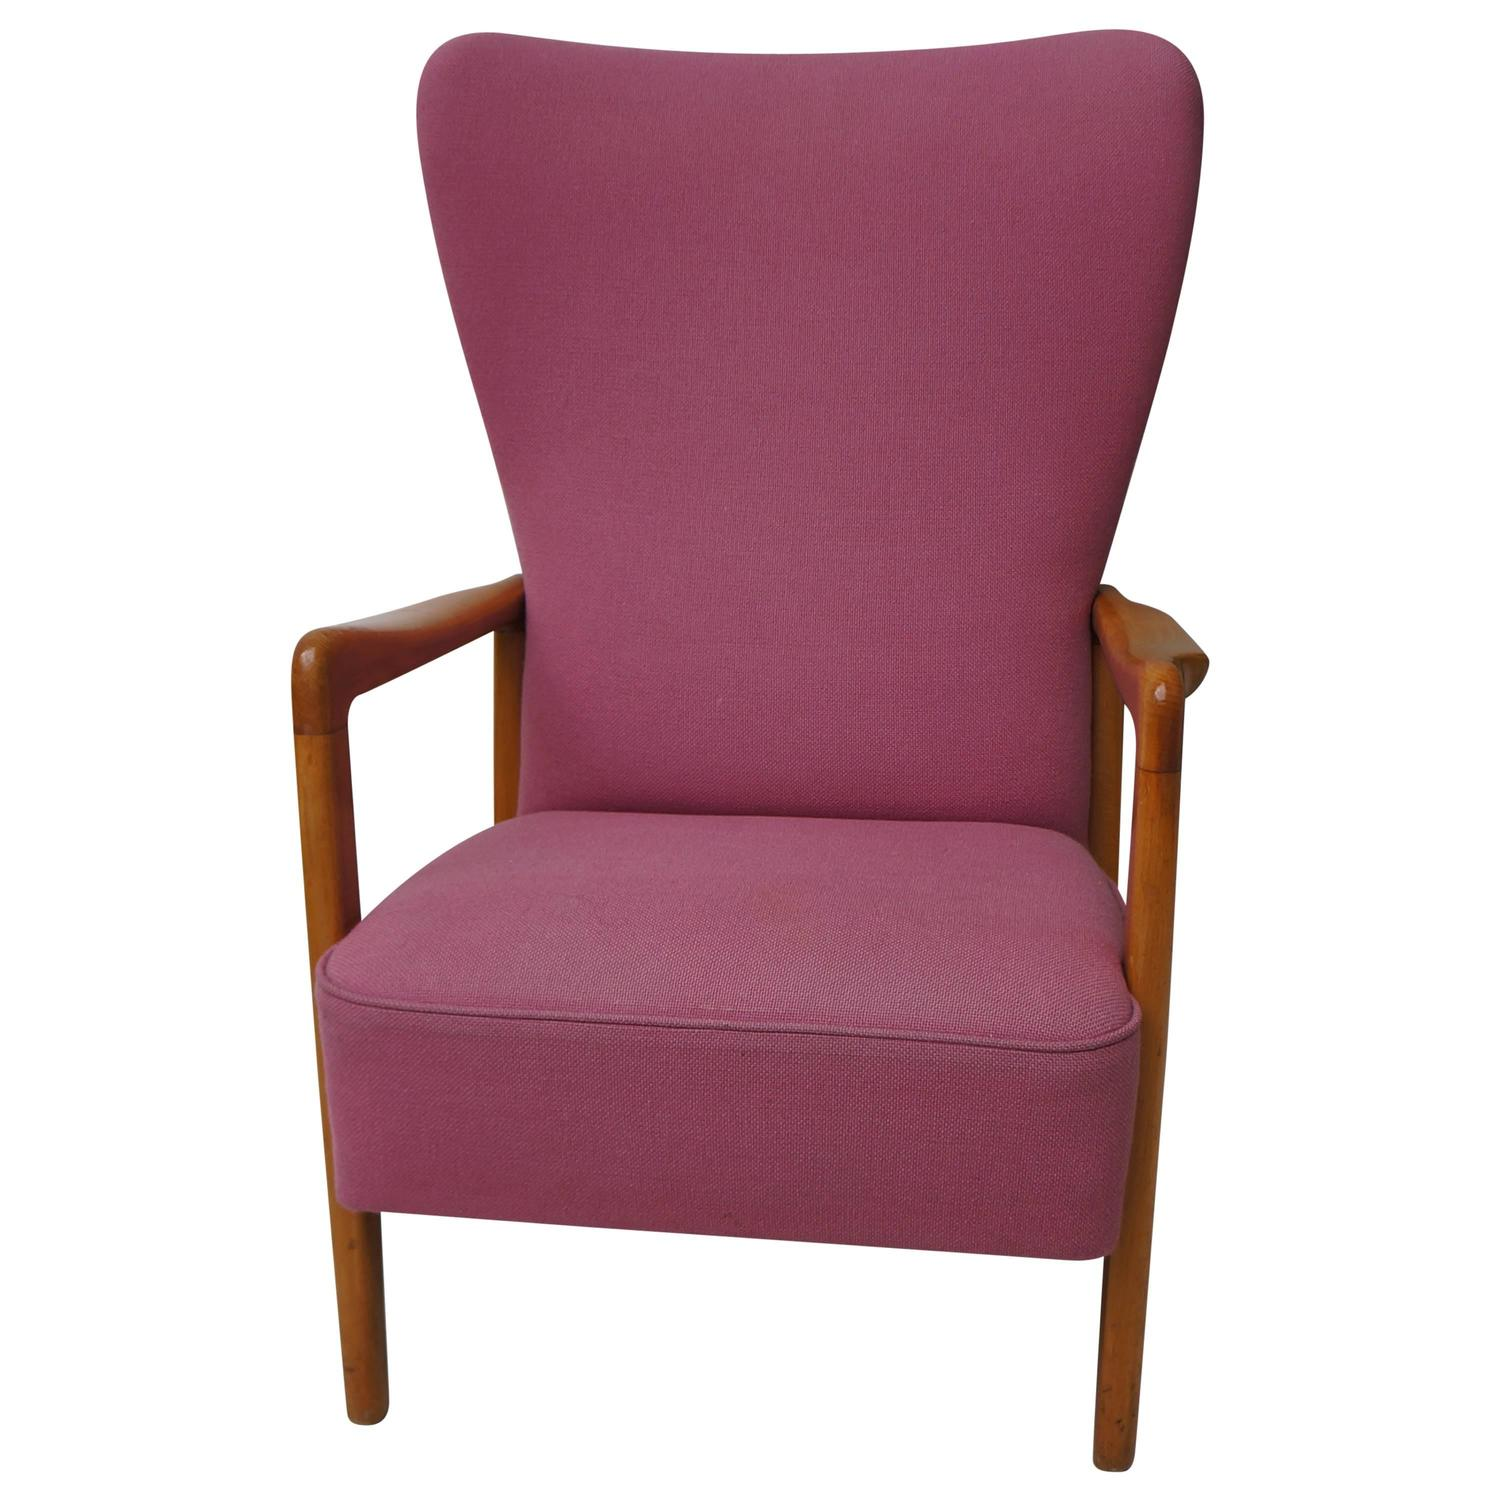 pink club chair tufted recliner scandinavian danish modern wooden armlegs upholstery